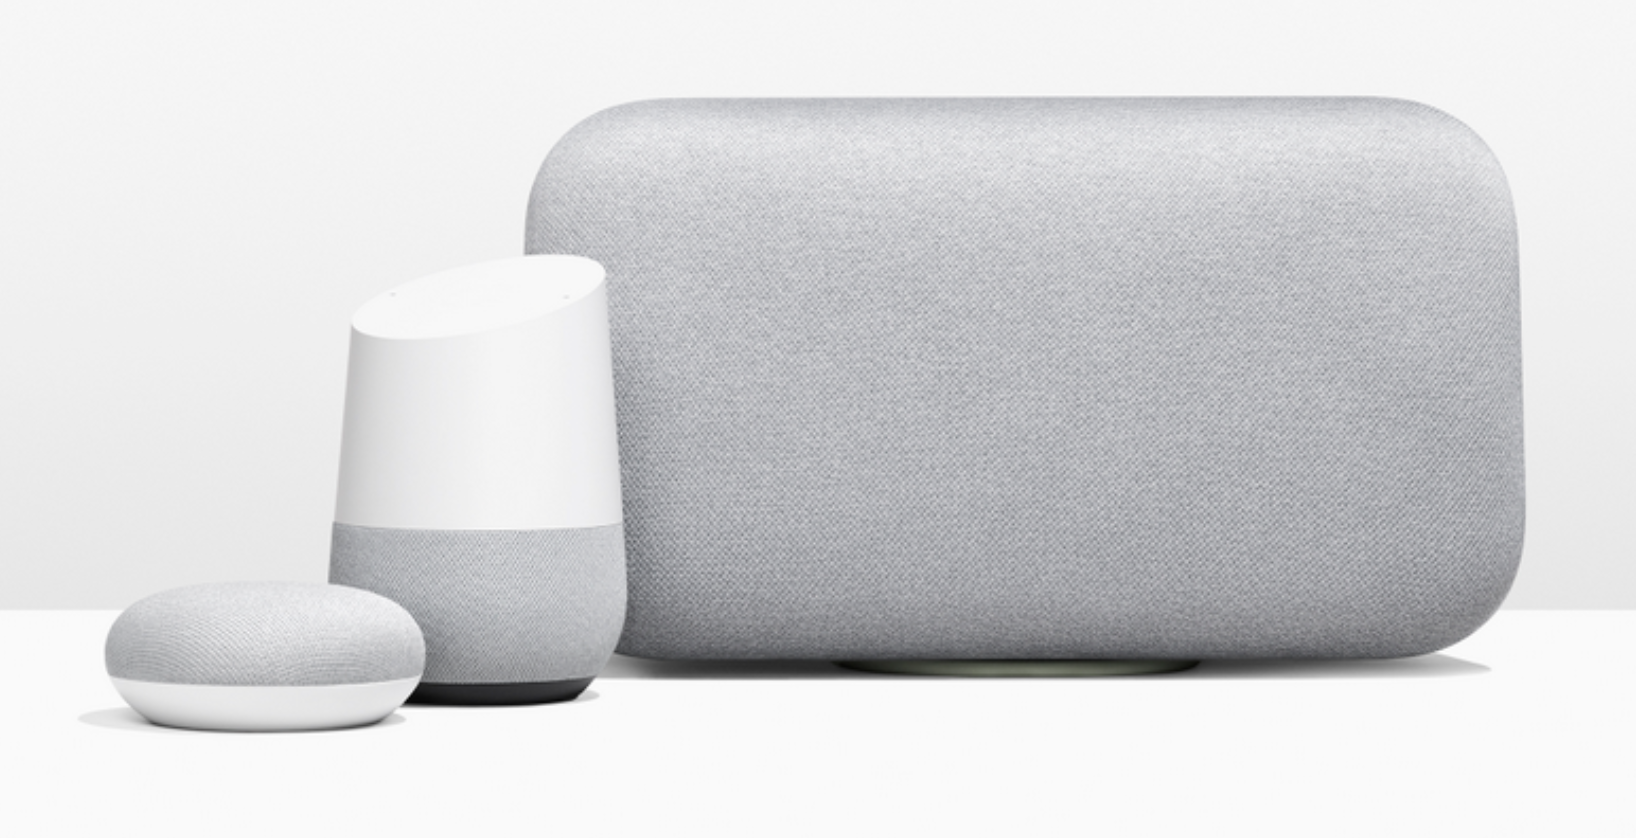 Best Walmart Prime Day 2019 Deals Google Home Nest Smart Speaker